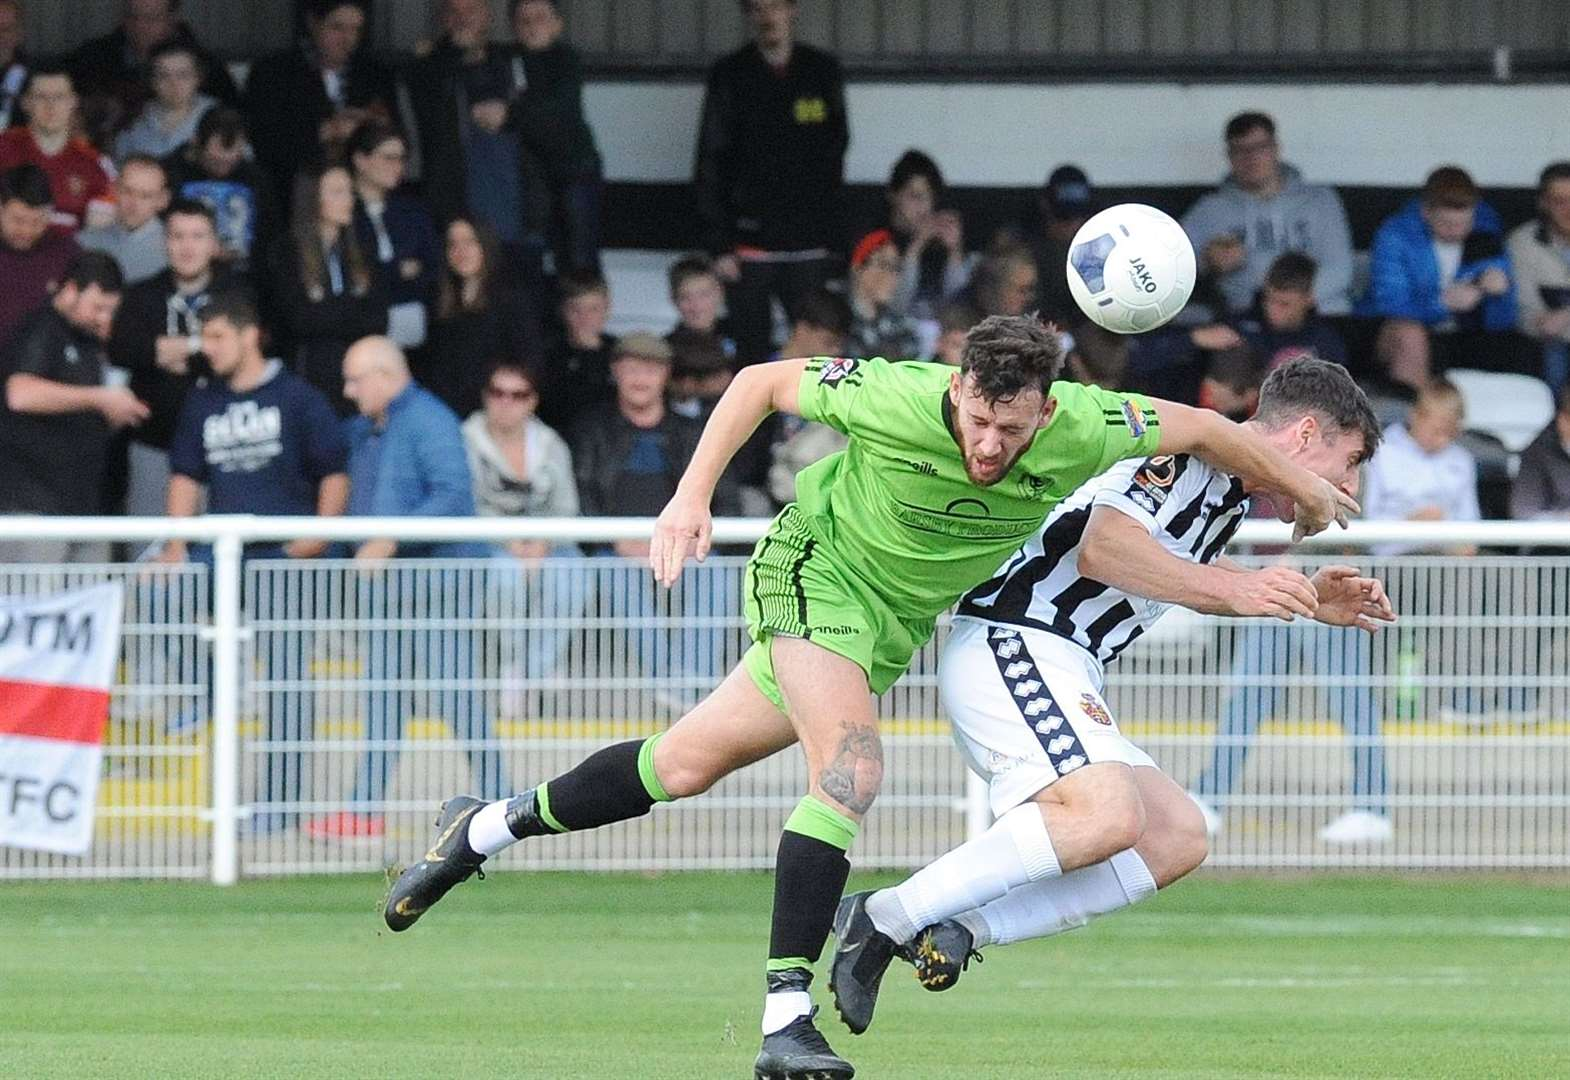 Linnets player says it's good to get Spennymoor wake-up call